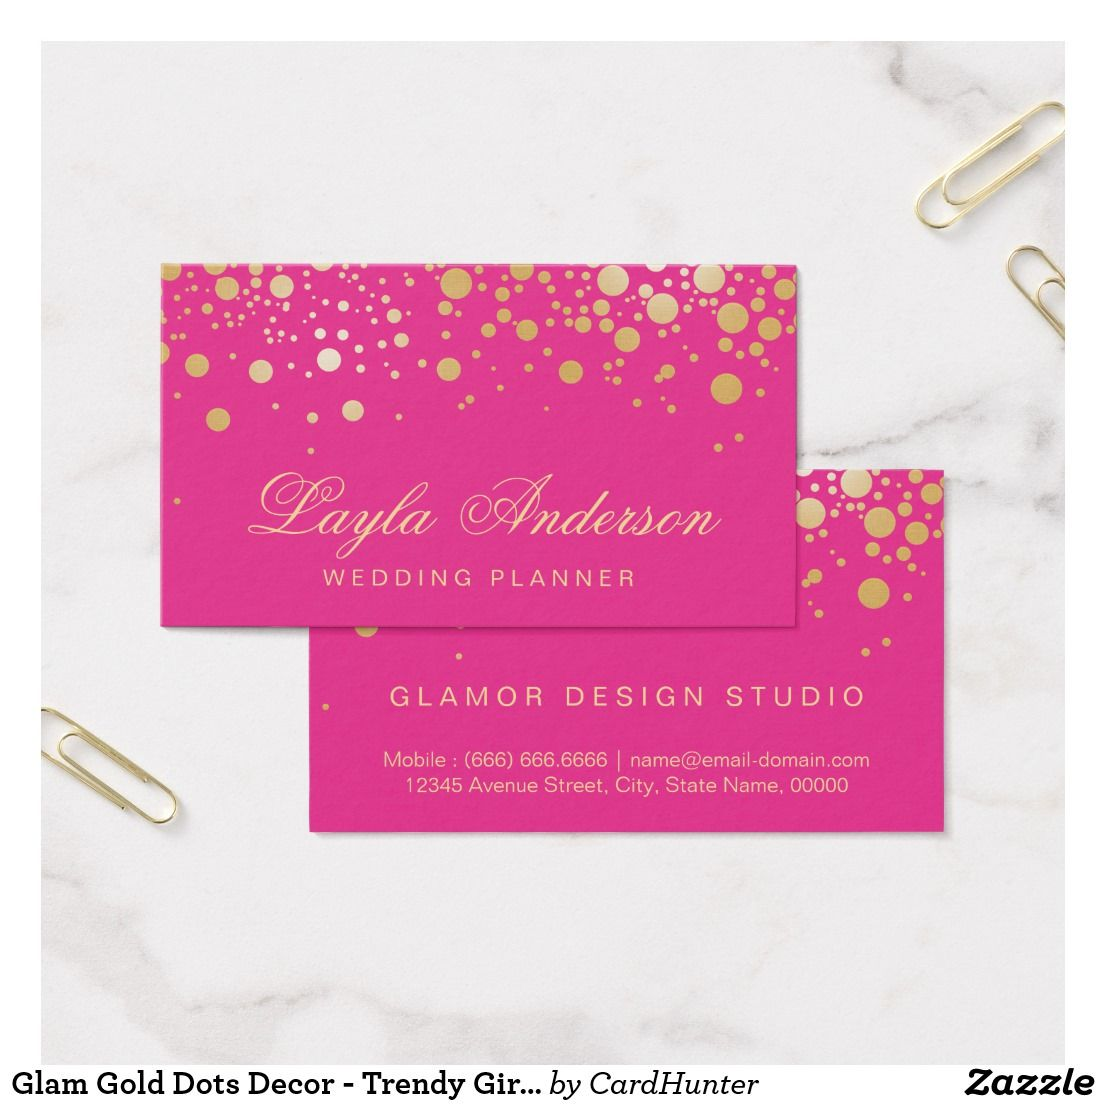 Glam Gold Dots Decor - Trendy Girly Hot Pink Business Card   Salon ideas